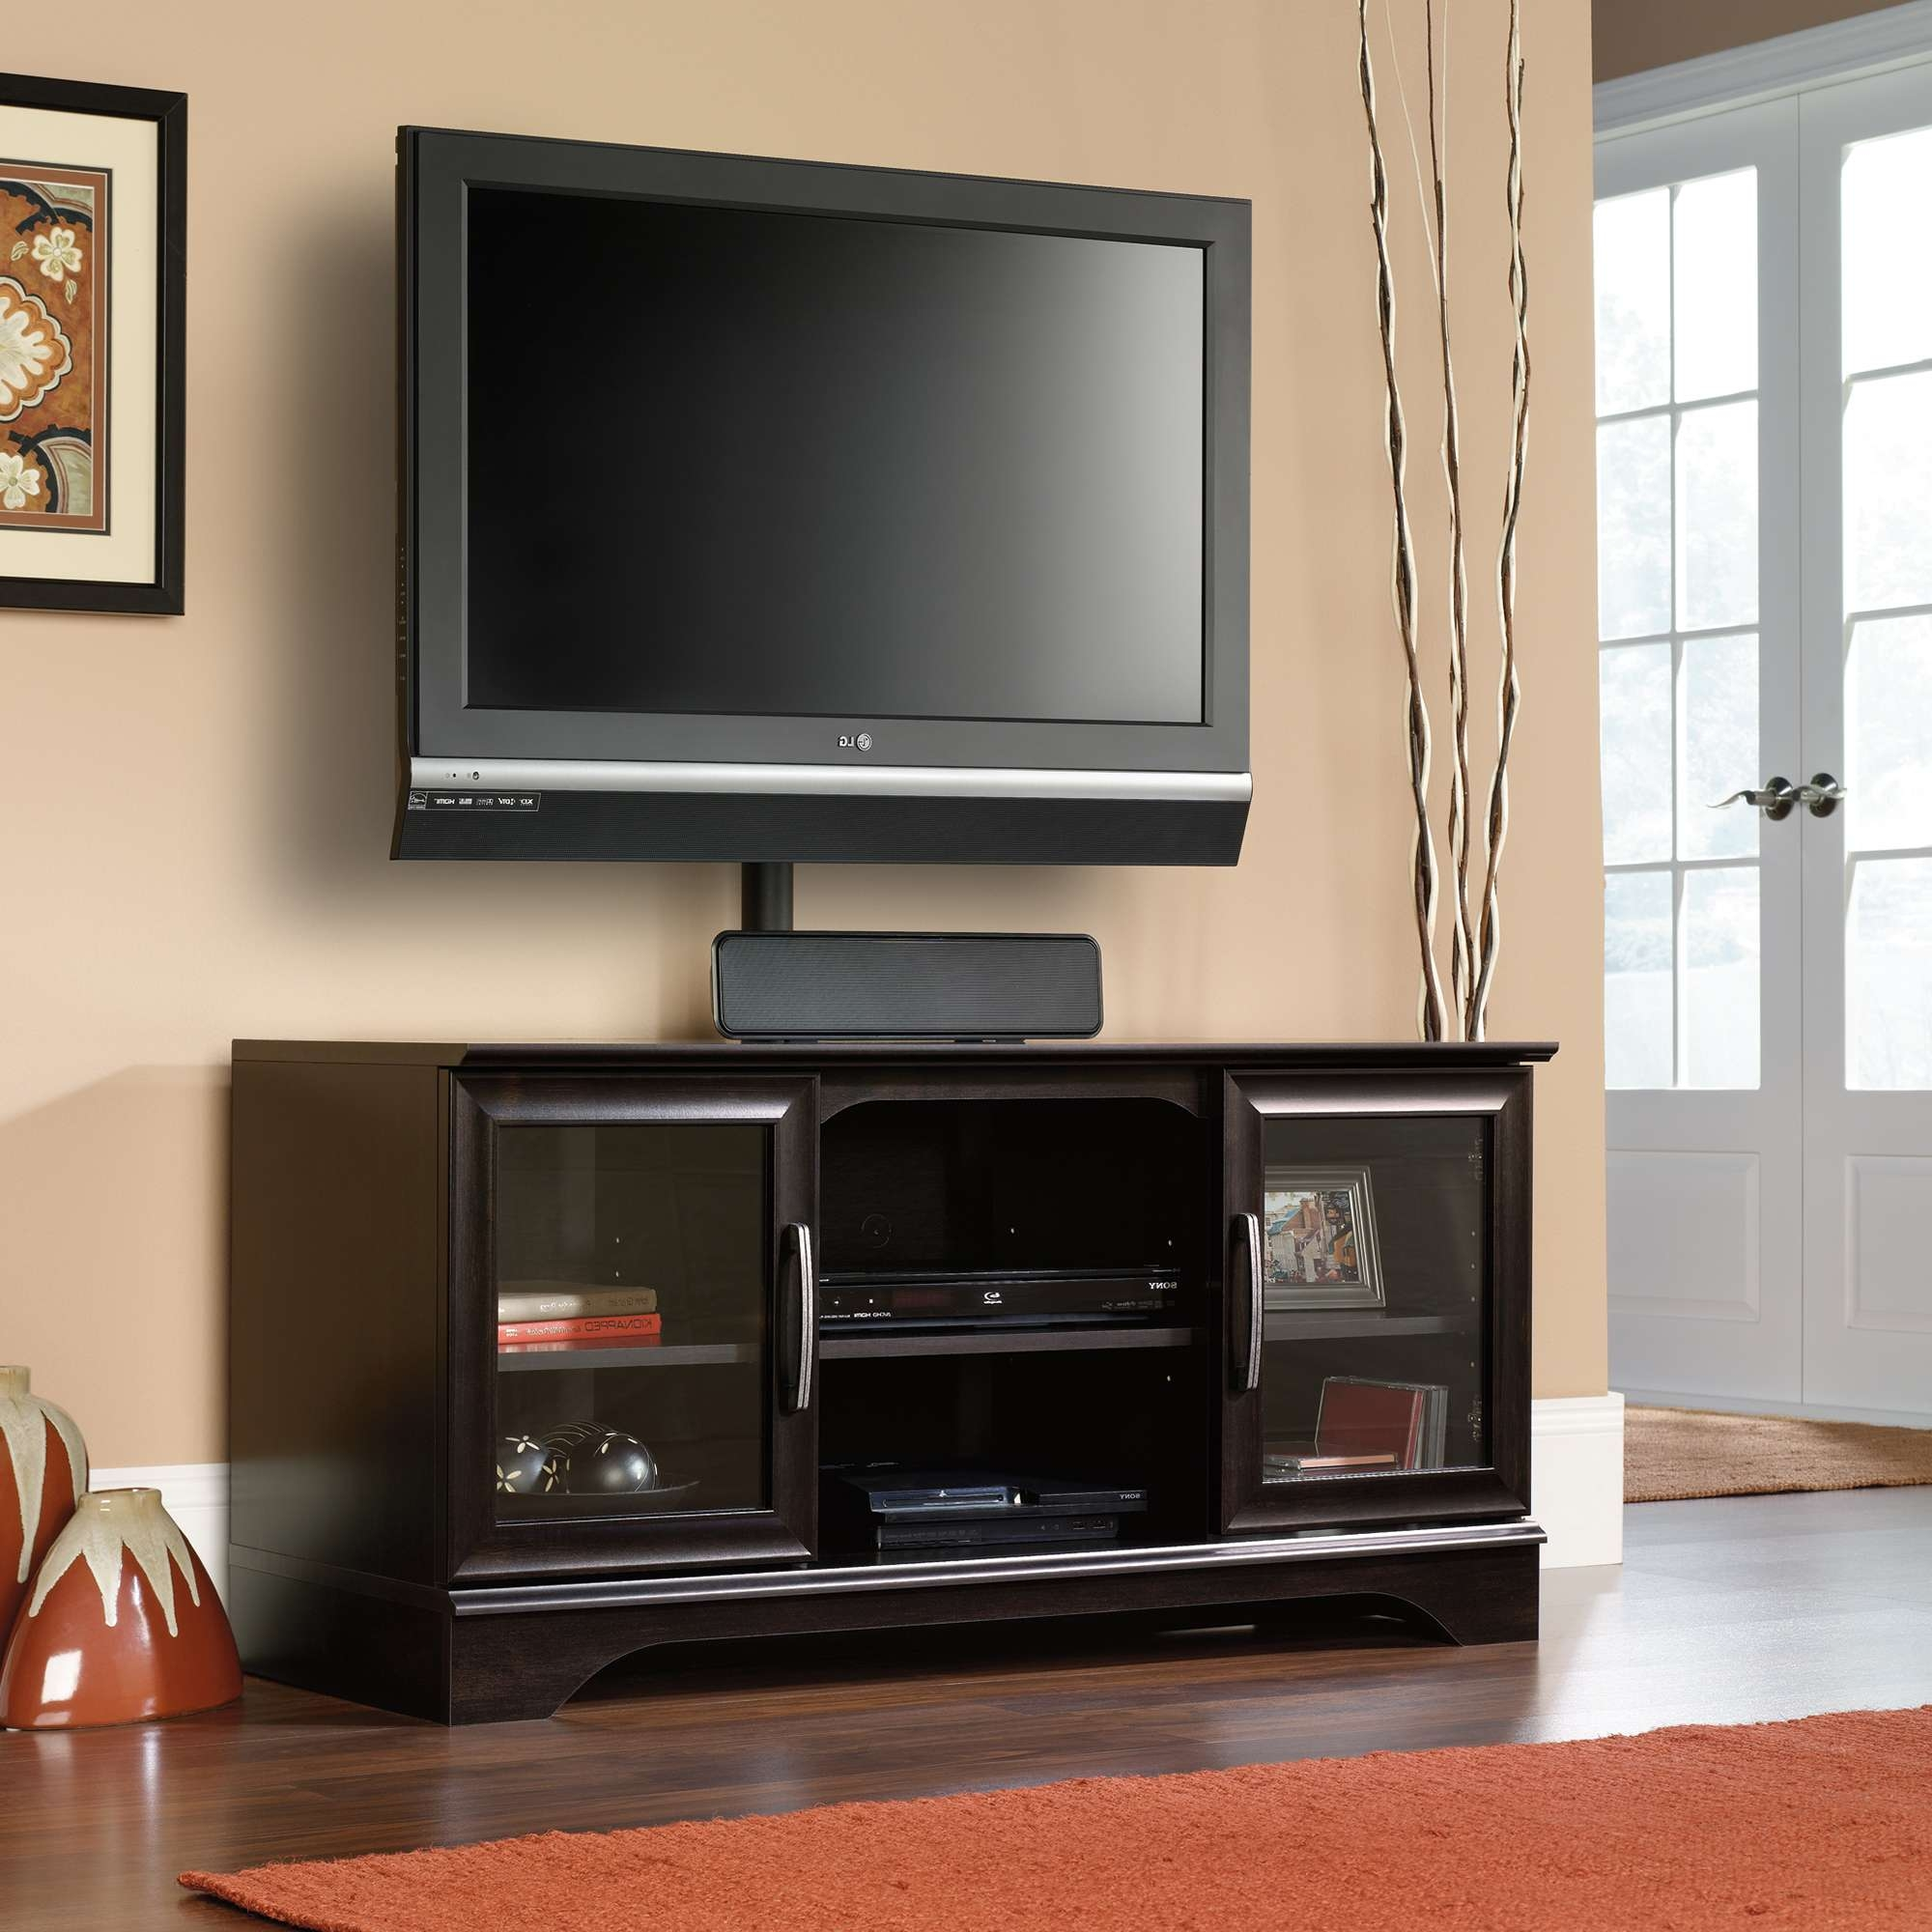 An Overview Of Black Tv Stand With Mount – Furniture Depot With Regard To Tv Stands With Mount (View 3 of 15)